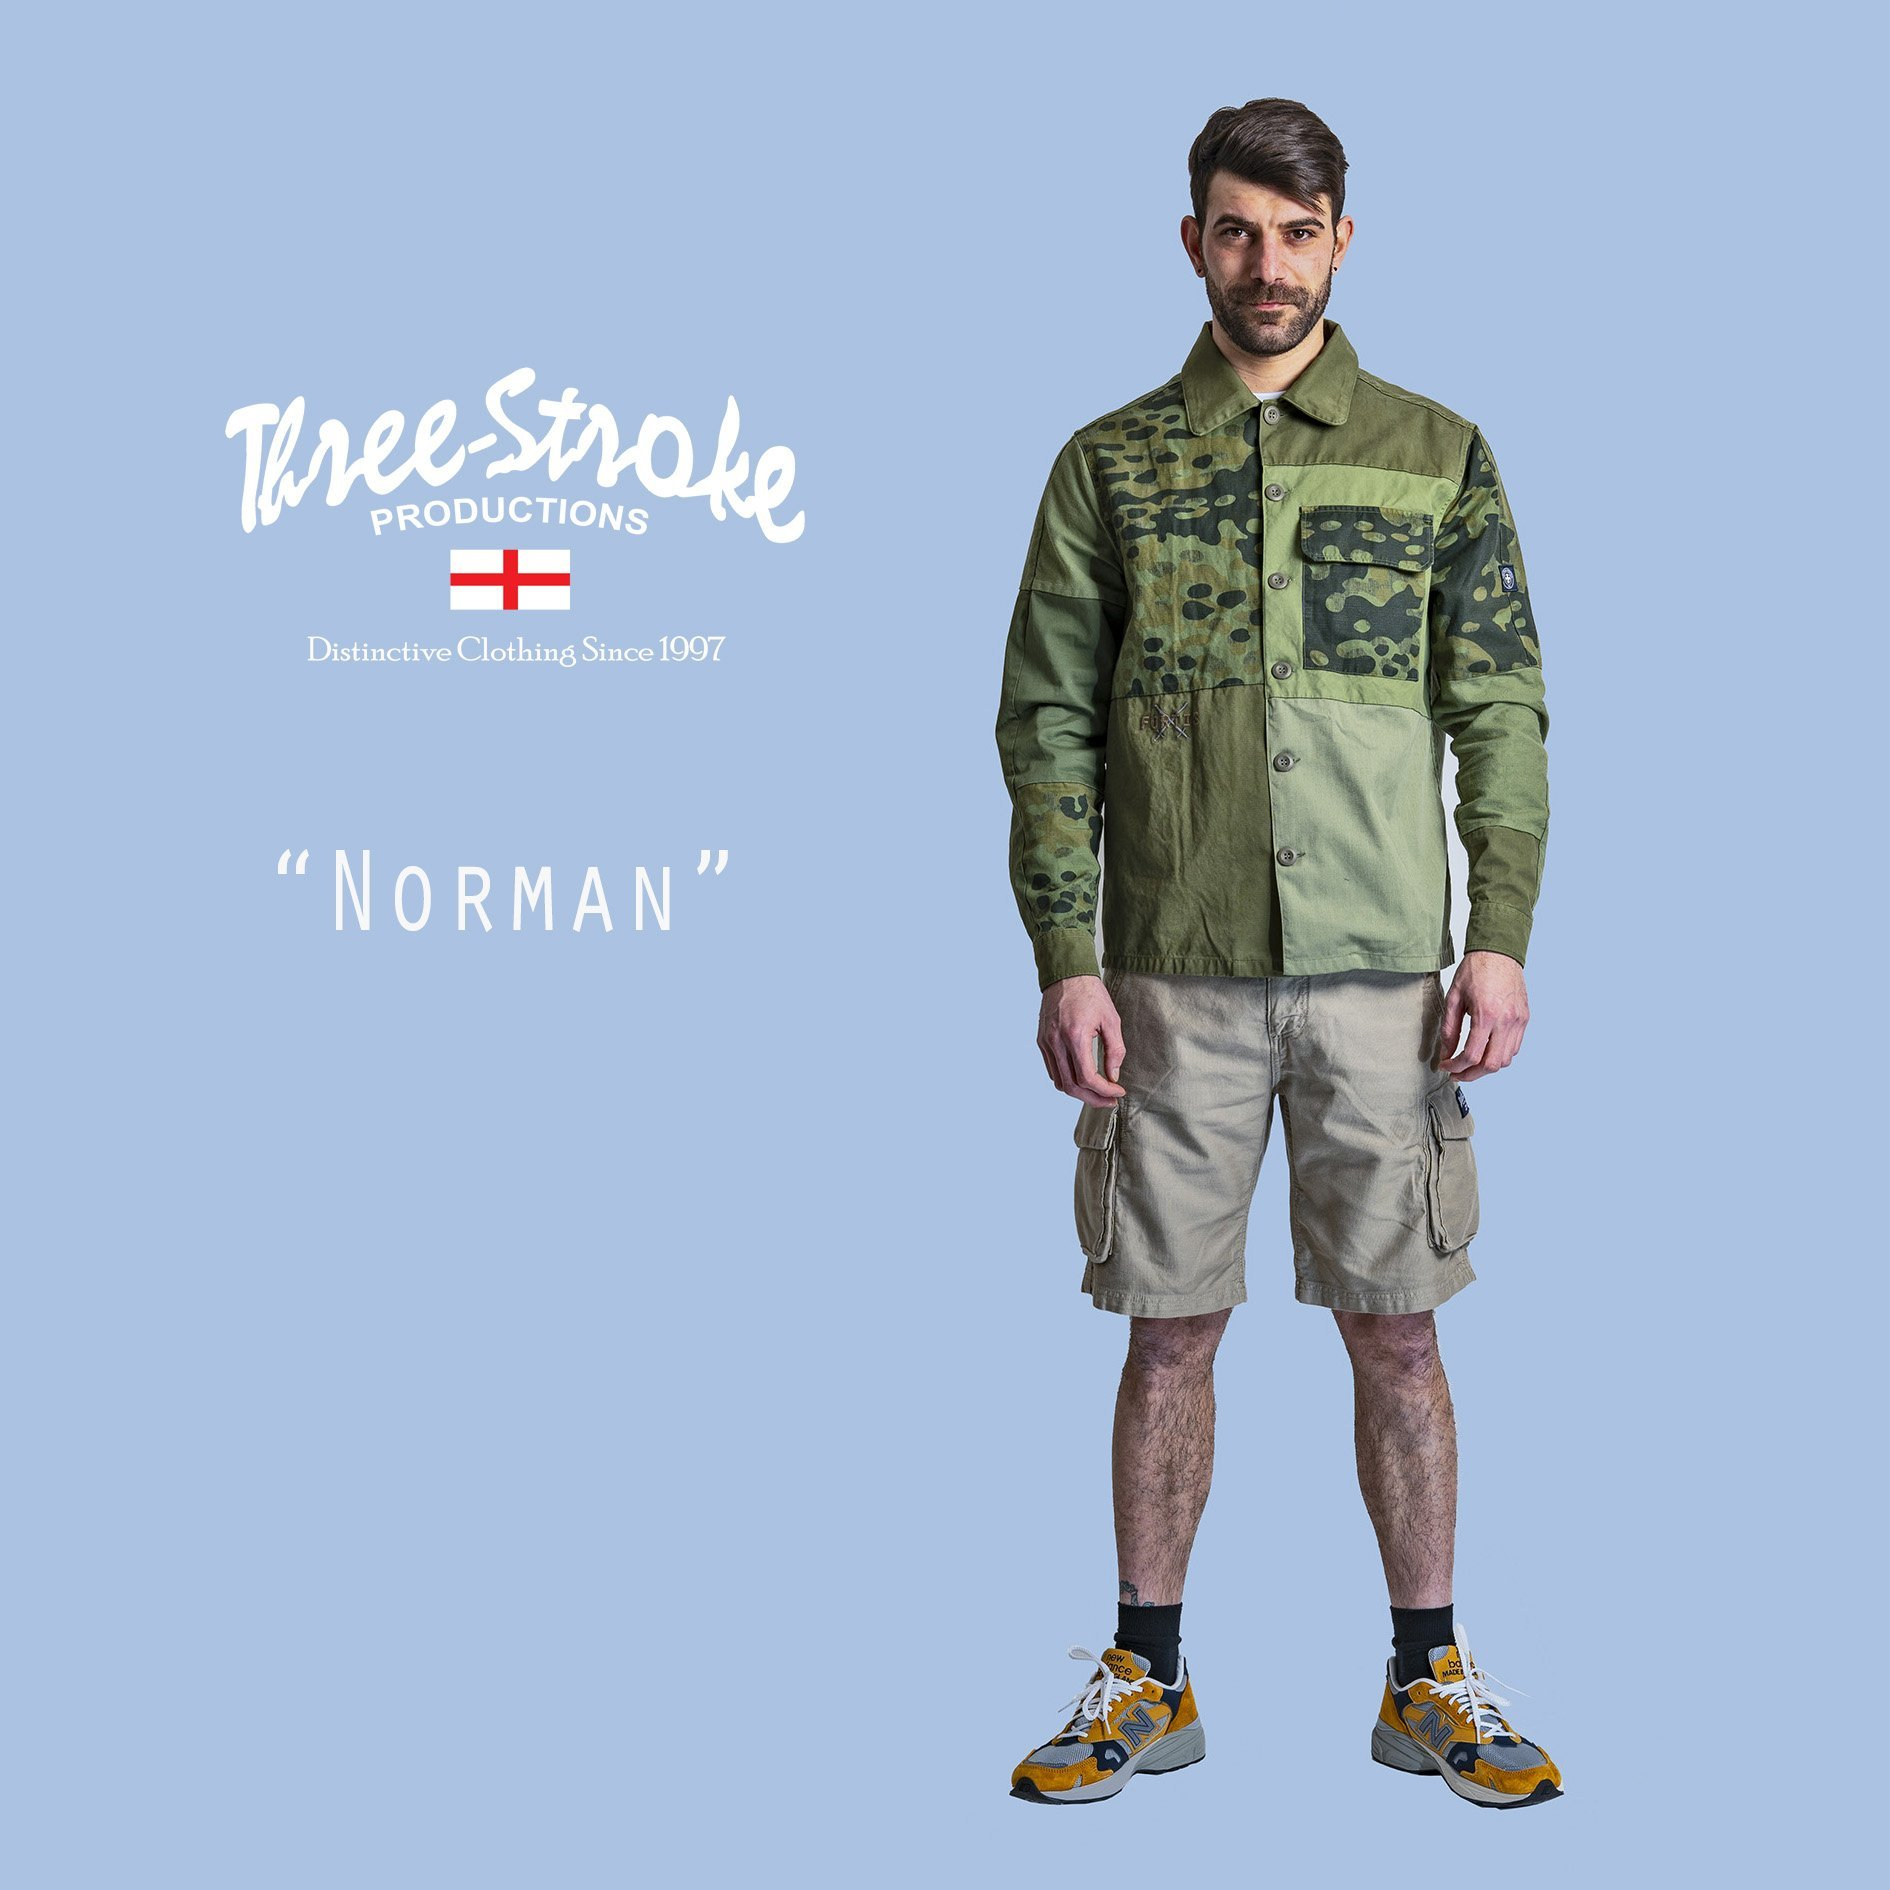 Norman overshirt and combat shorts by Three Stroke Productions